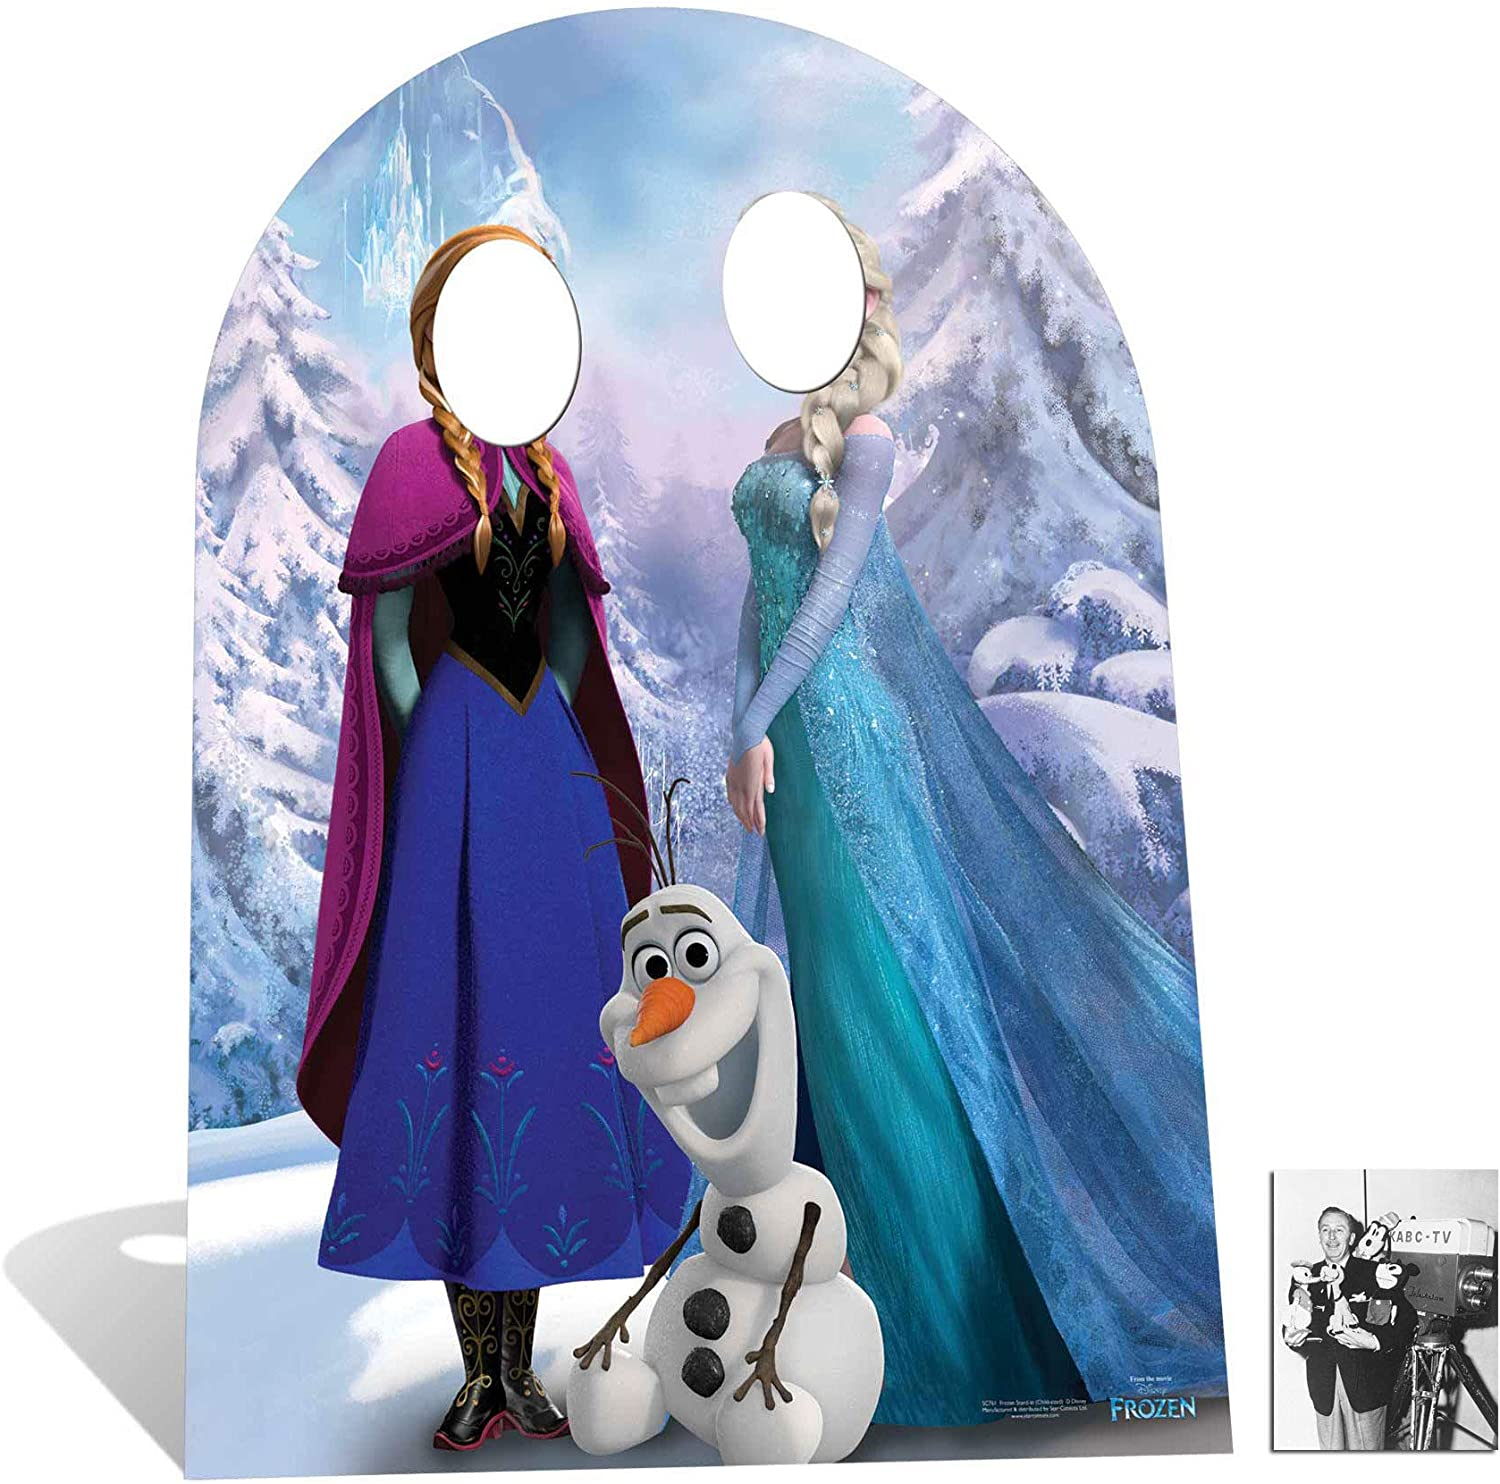 Fan Pack - Child Size Anna and Elsa with Olaf from Frozen Disney Cardboard Stand-in Cutout / Standee - Includes 8x10 (20x25cm) Photo